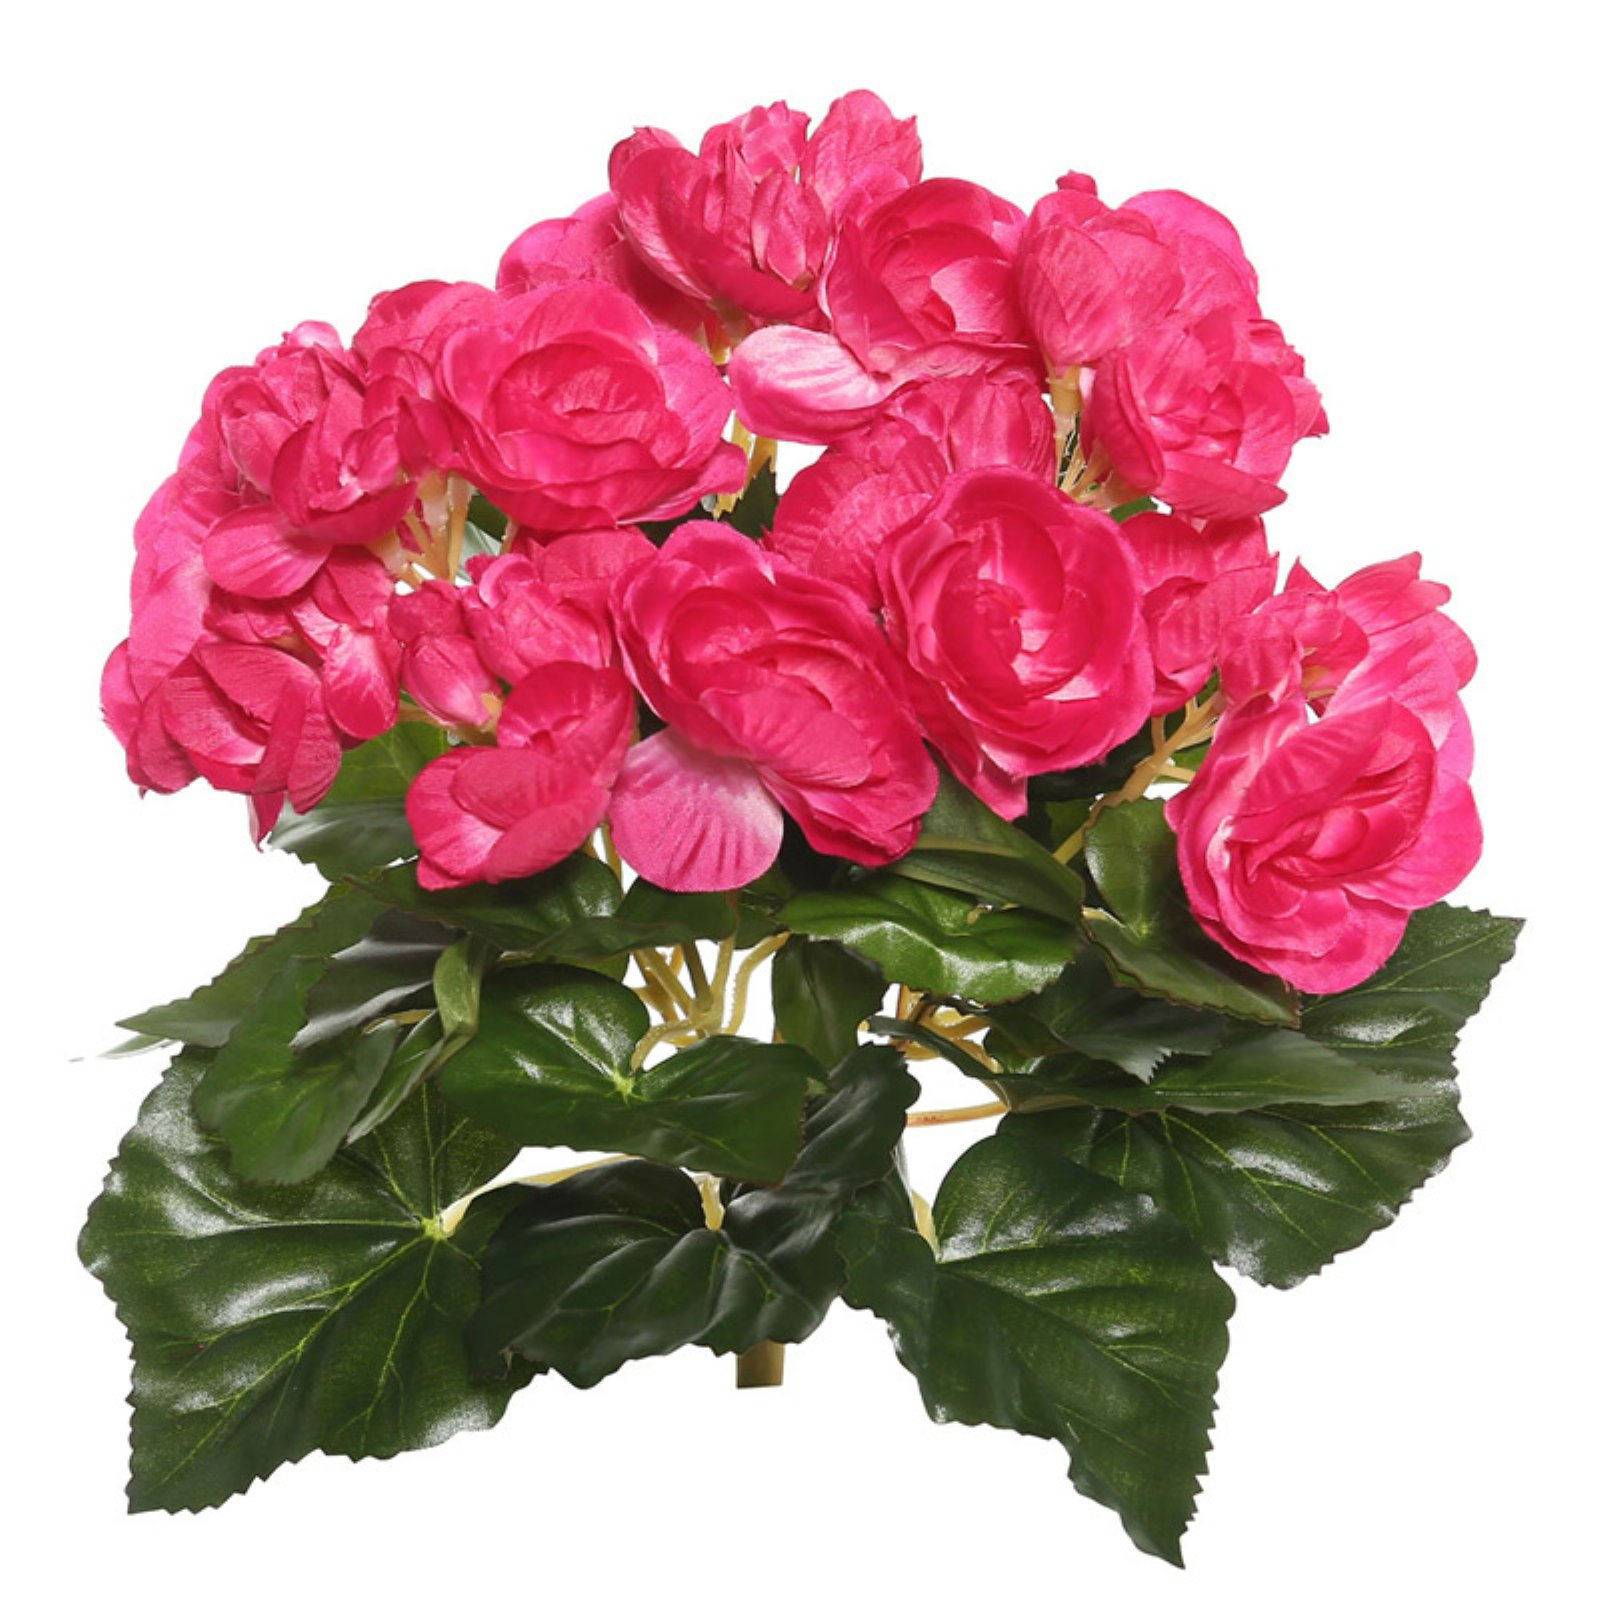 "Vickerman 9.5"" Hot Pink Polyester Begonia Bush with 36 Leaves and 54 Flowers"